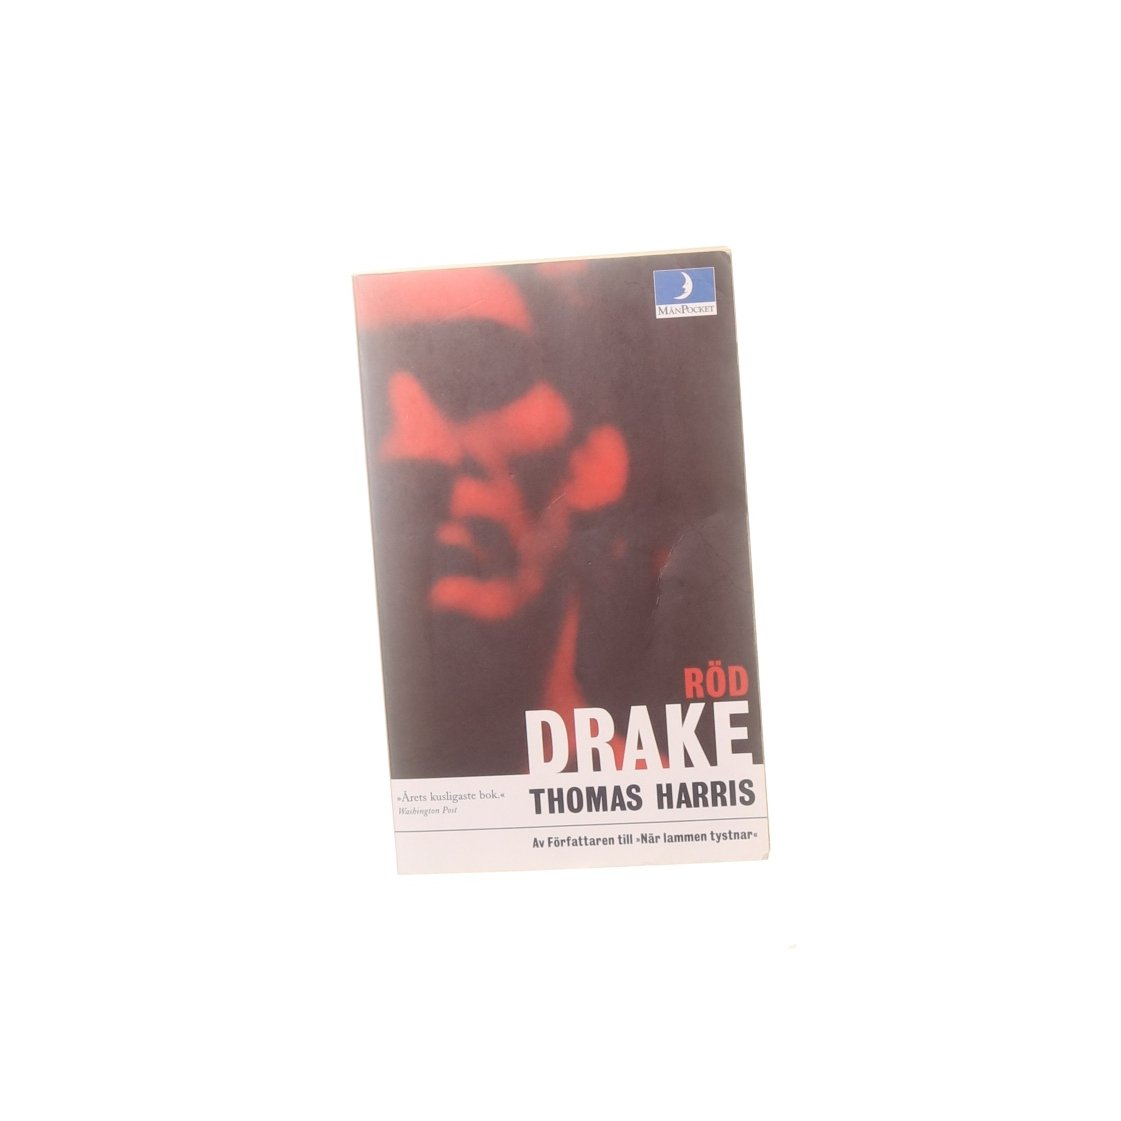 Bok, Röd drake, Thomas Harris, Pocket, ISBN: 9789176436431, 2000